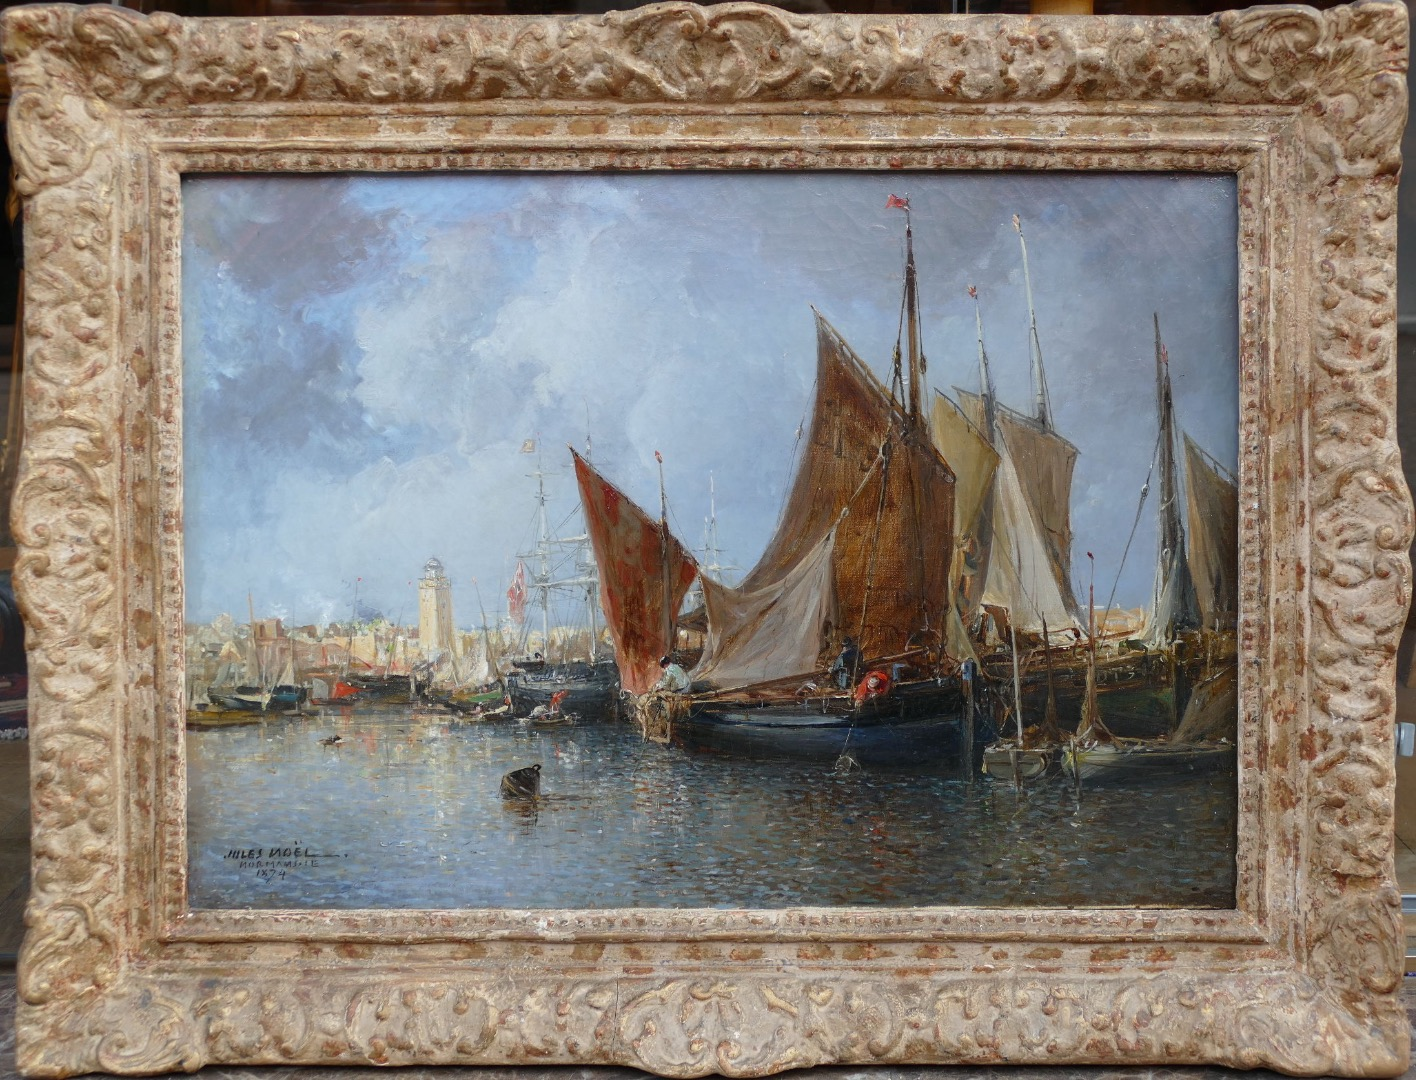 NOEL JULES FRENCH ANCIENT PAINTING 19Th CENTURY HARBOUR IN NORMANDIE OIL ON CANVAS SIGNED AND DATED